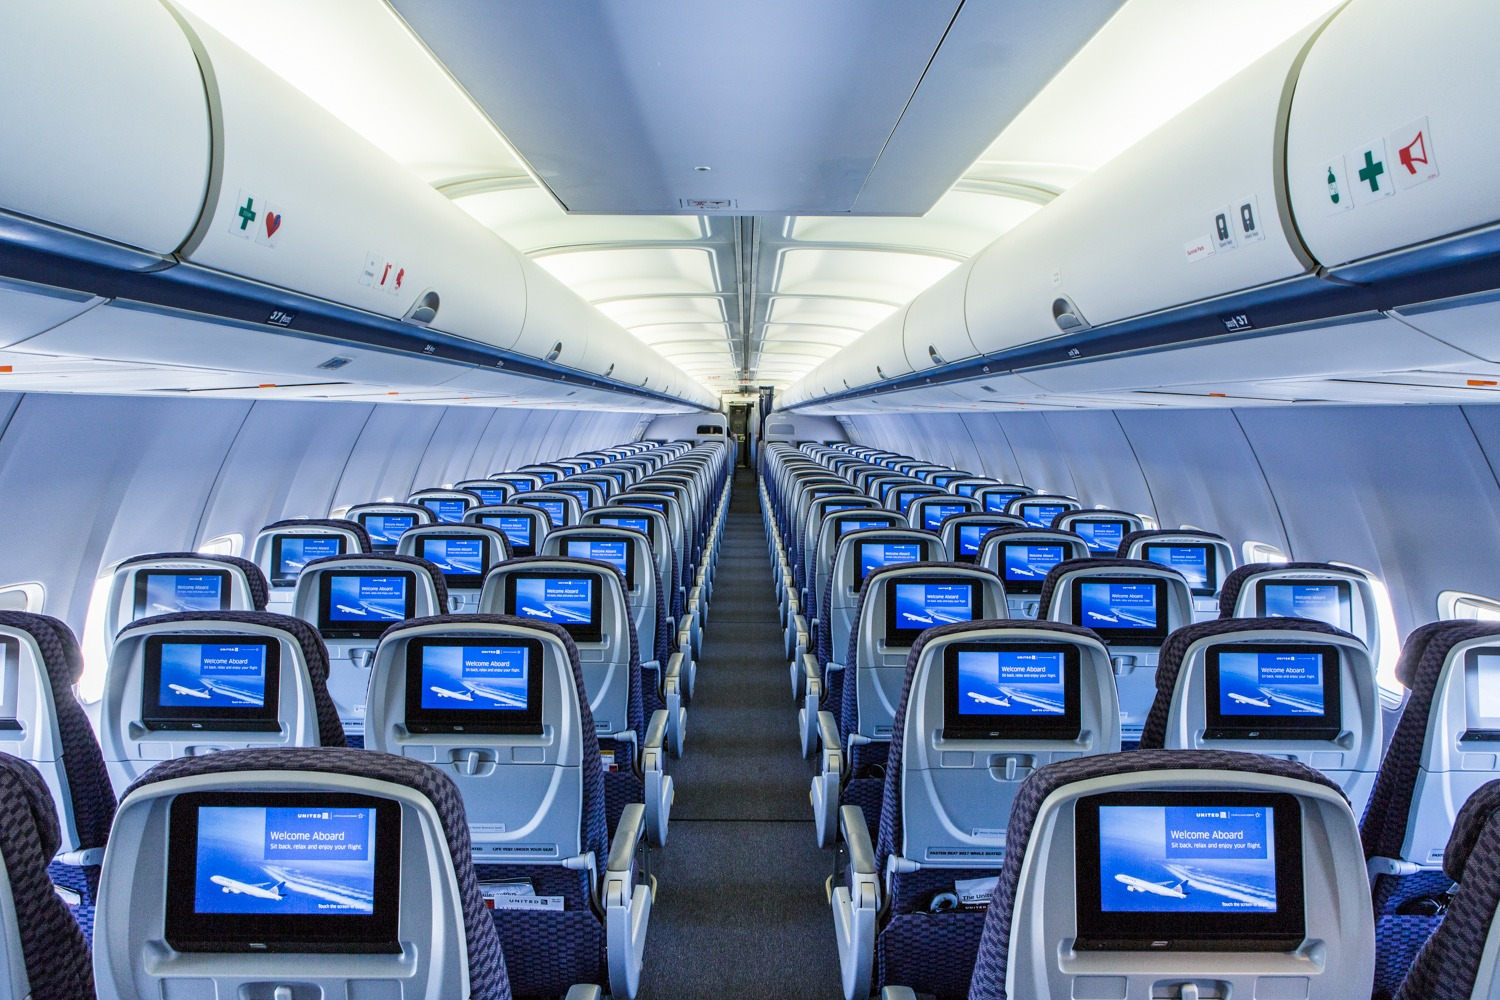 United Airline Planes Inside United Airlines Comple...